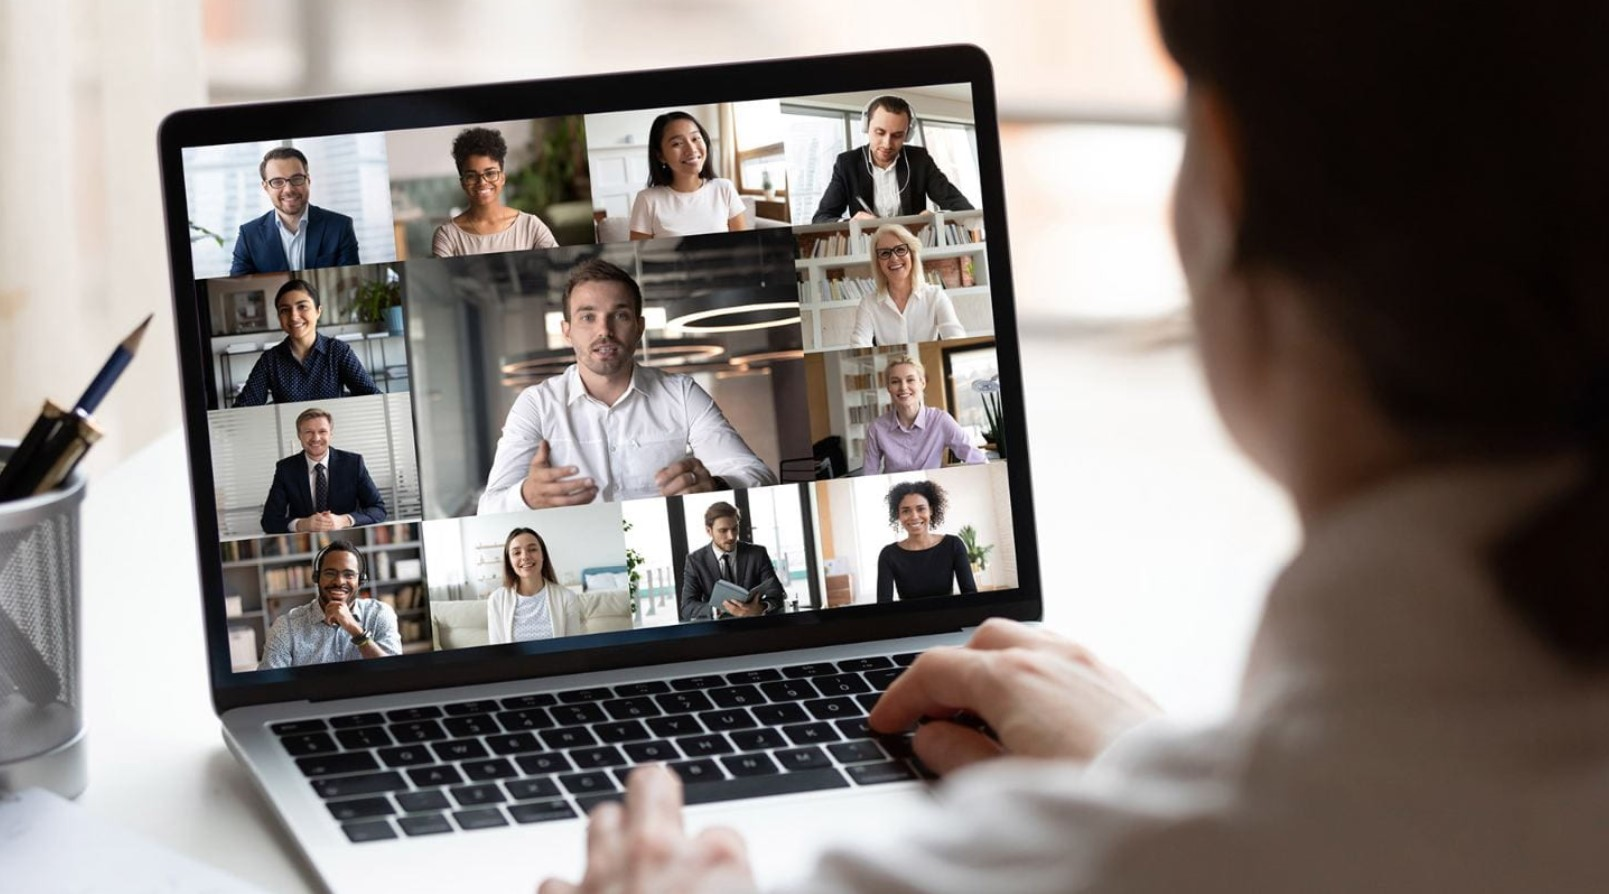 Code of Conduct for Virtual Meetings